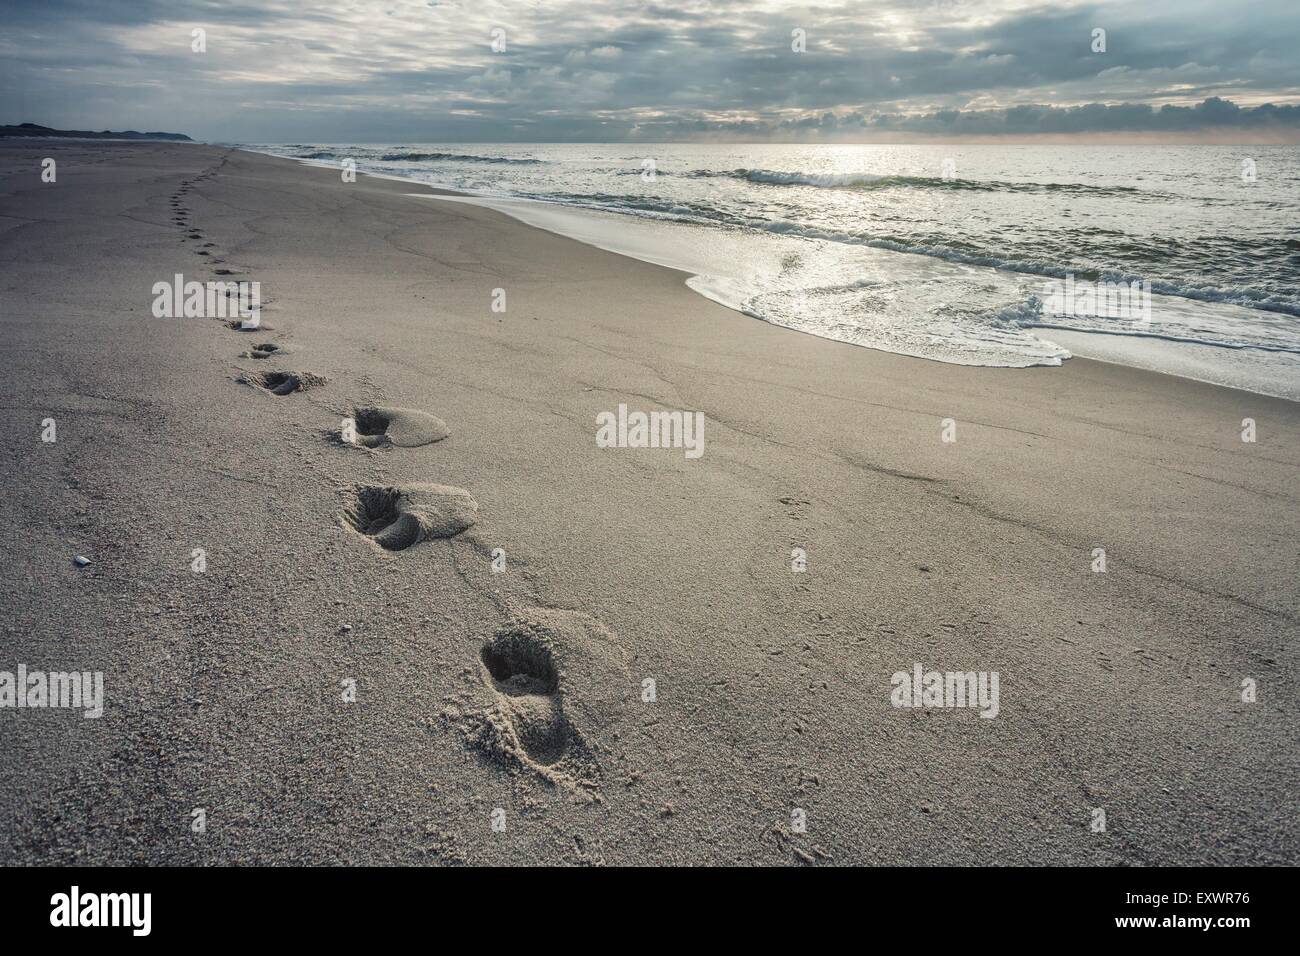 Footprint in sand, Sylt, Schleswig-Holstein, Germany, Europe - Stock Image